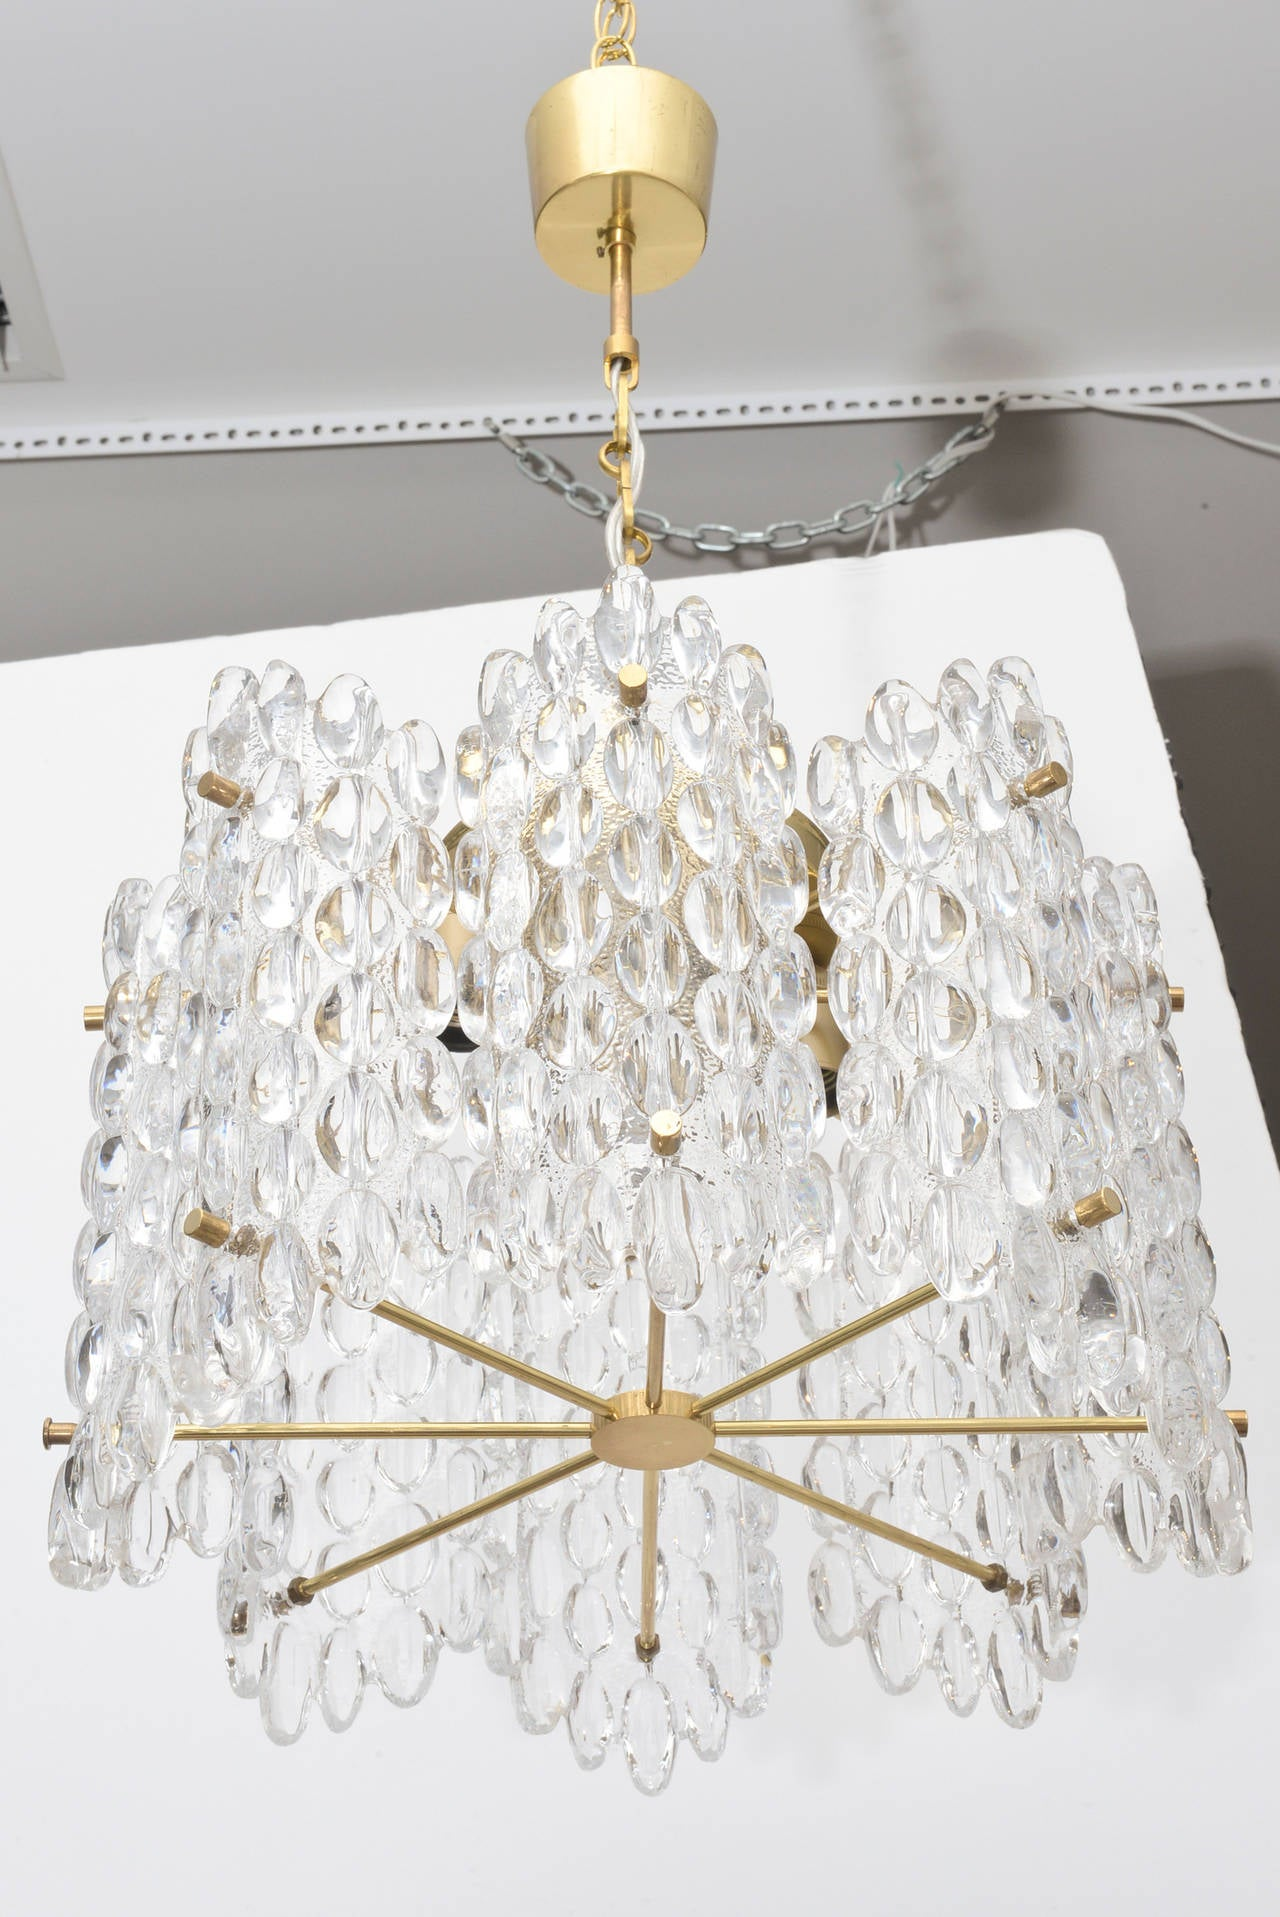 carl fagerlund mid century modern glass chandelier at 1stdibs. Black Bedroom Furniture Sets. Home Design Ideas